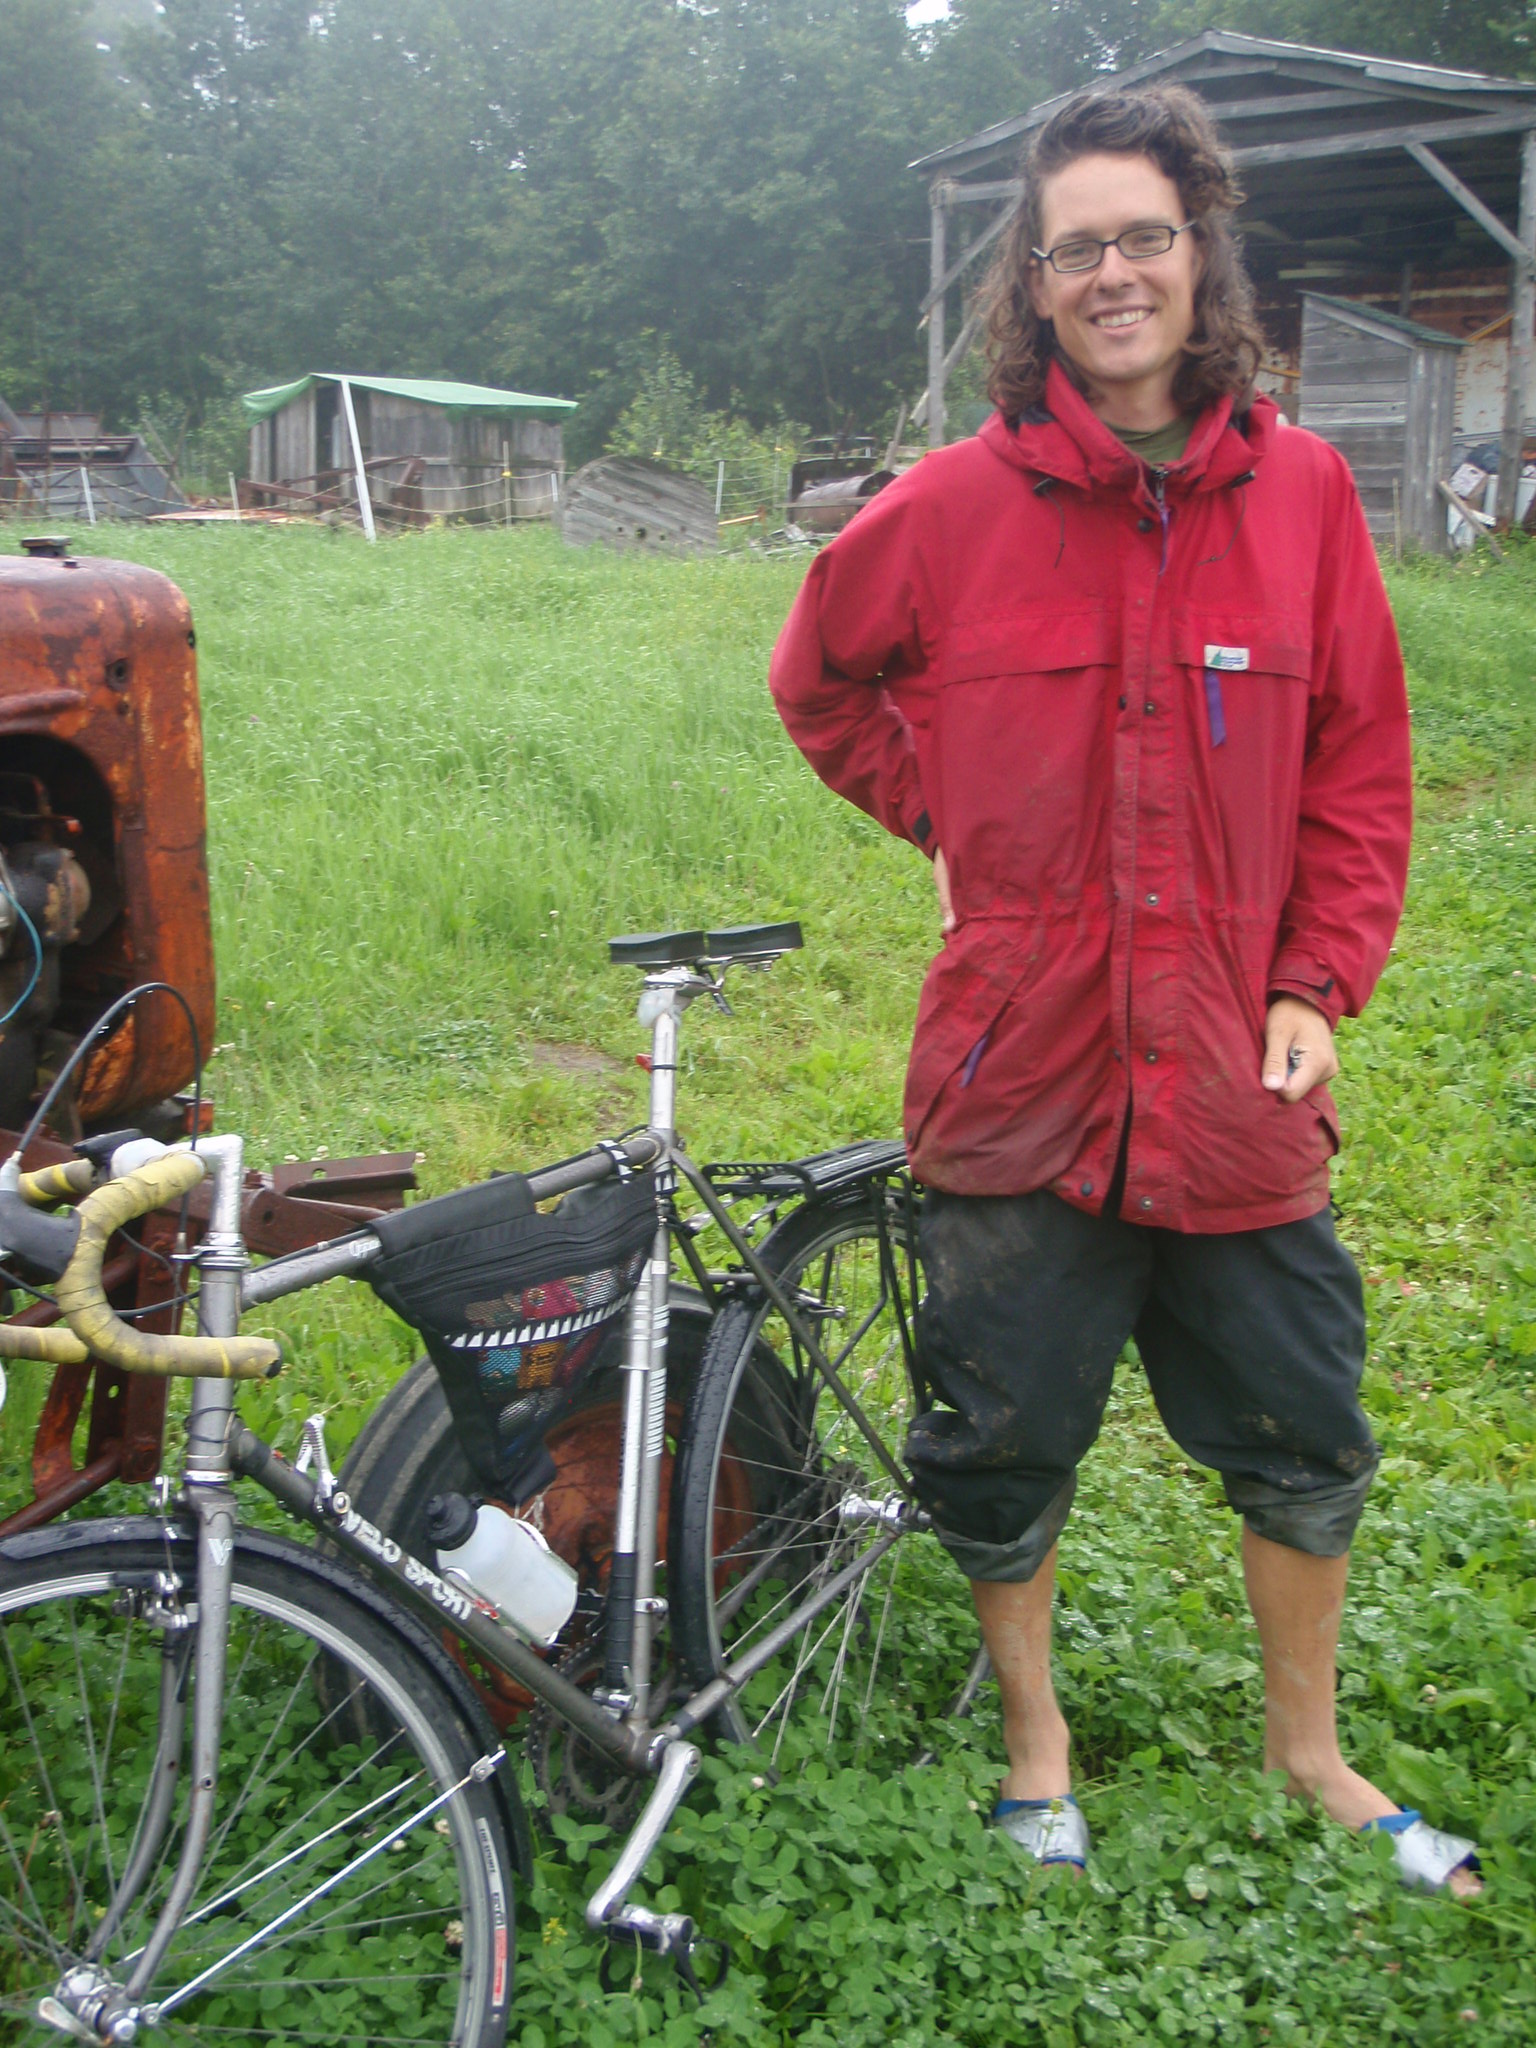 Canadian Bicyclist Trading Labor for Tent Space on Farms in America